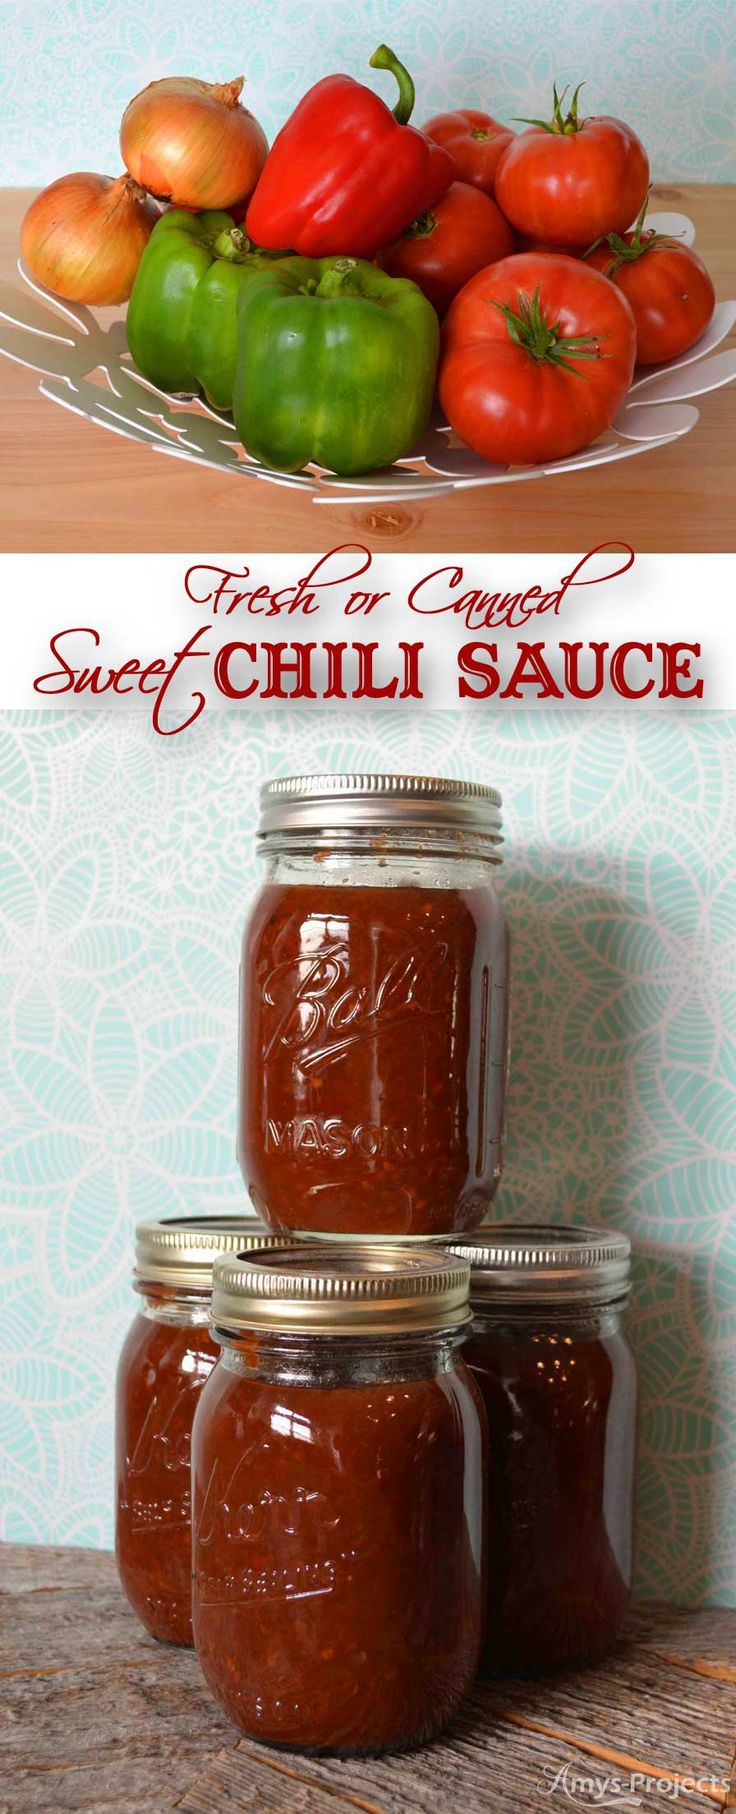 Delicious recipe for fresh or canned sweet chili sauce. We love chili sauce on our meatloaf and in baked beans.